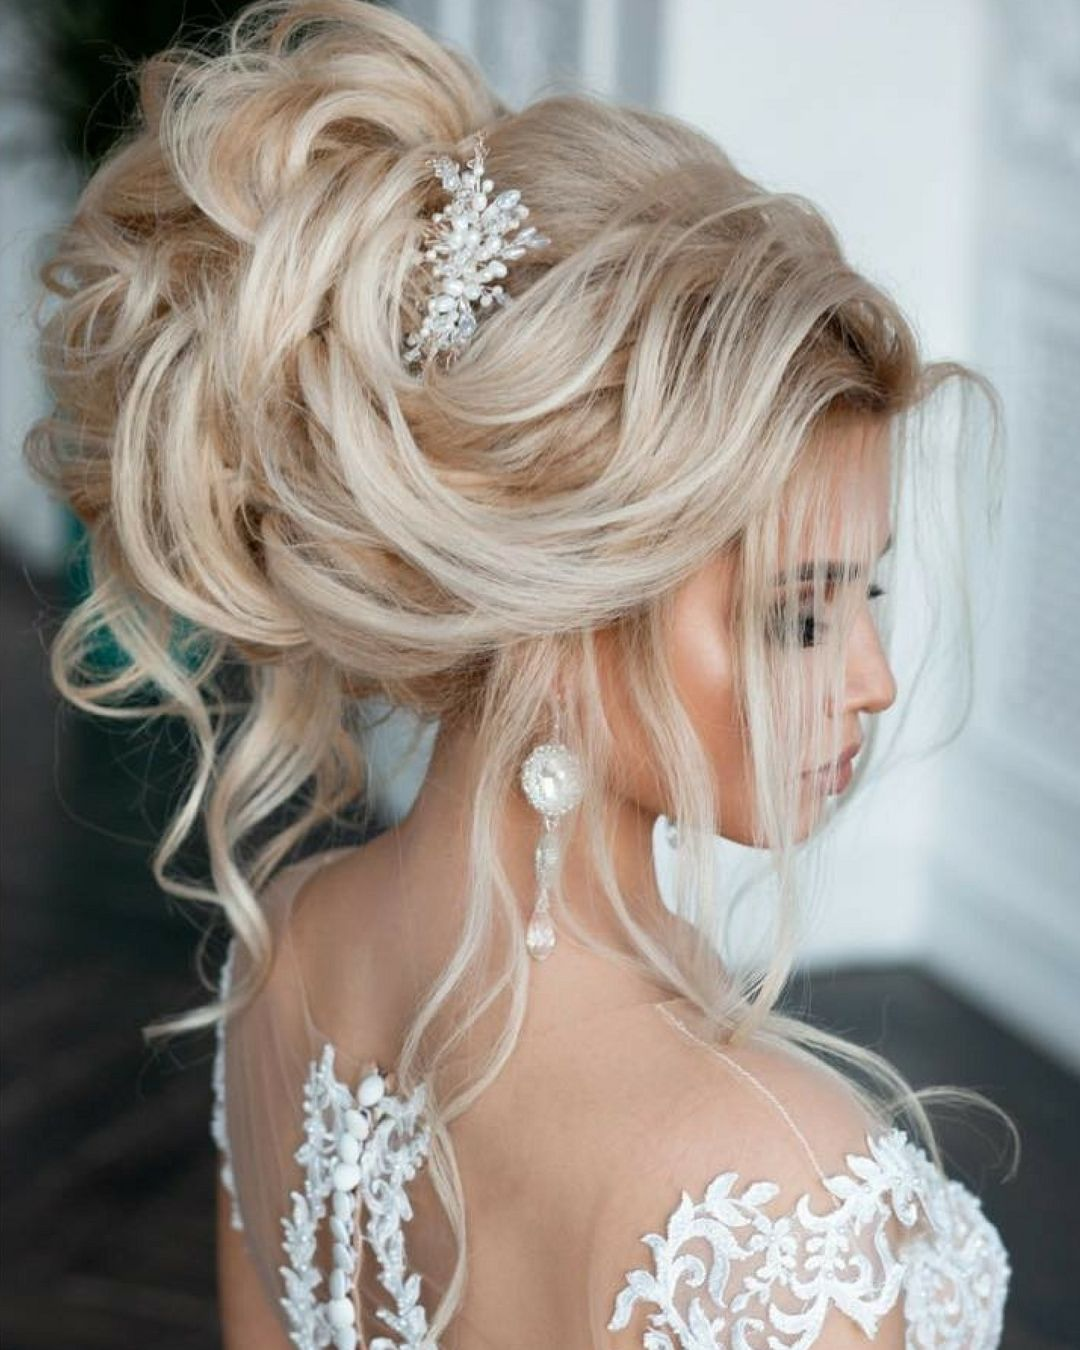 Beautifully Volume Updo And Elegant Hair Accessory And What Was Your Hairstyle Like On The Big Day H Blonde Bridal Hair Hair Styles Elegant Hairstyles